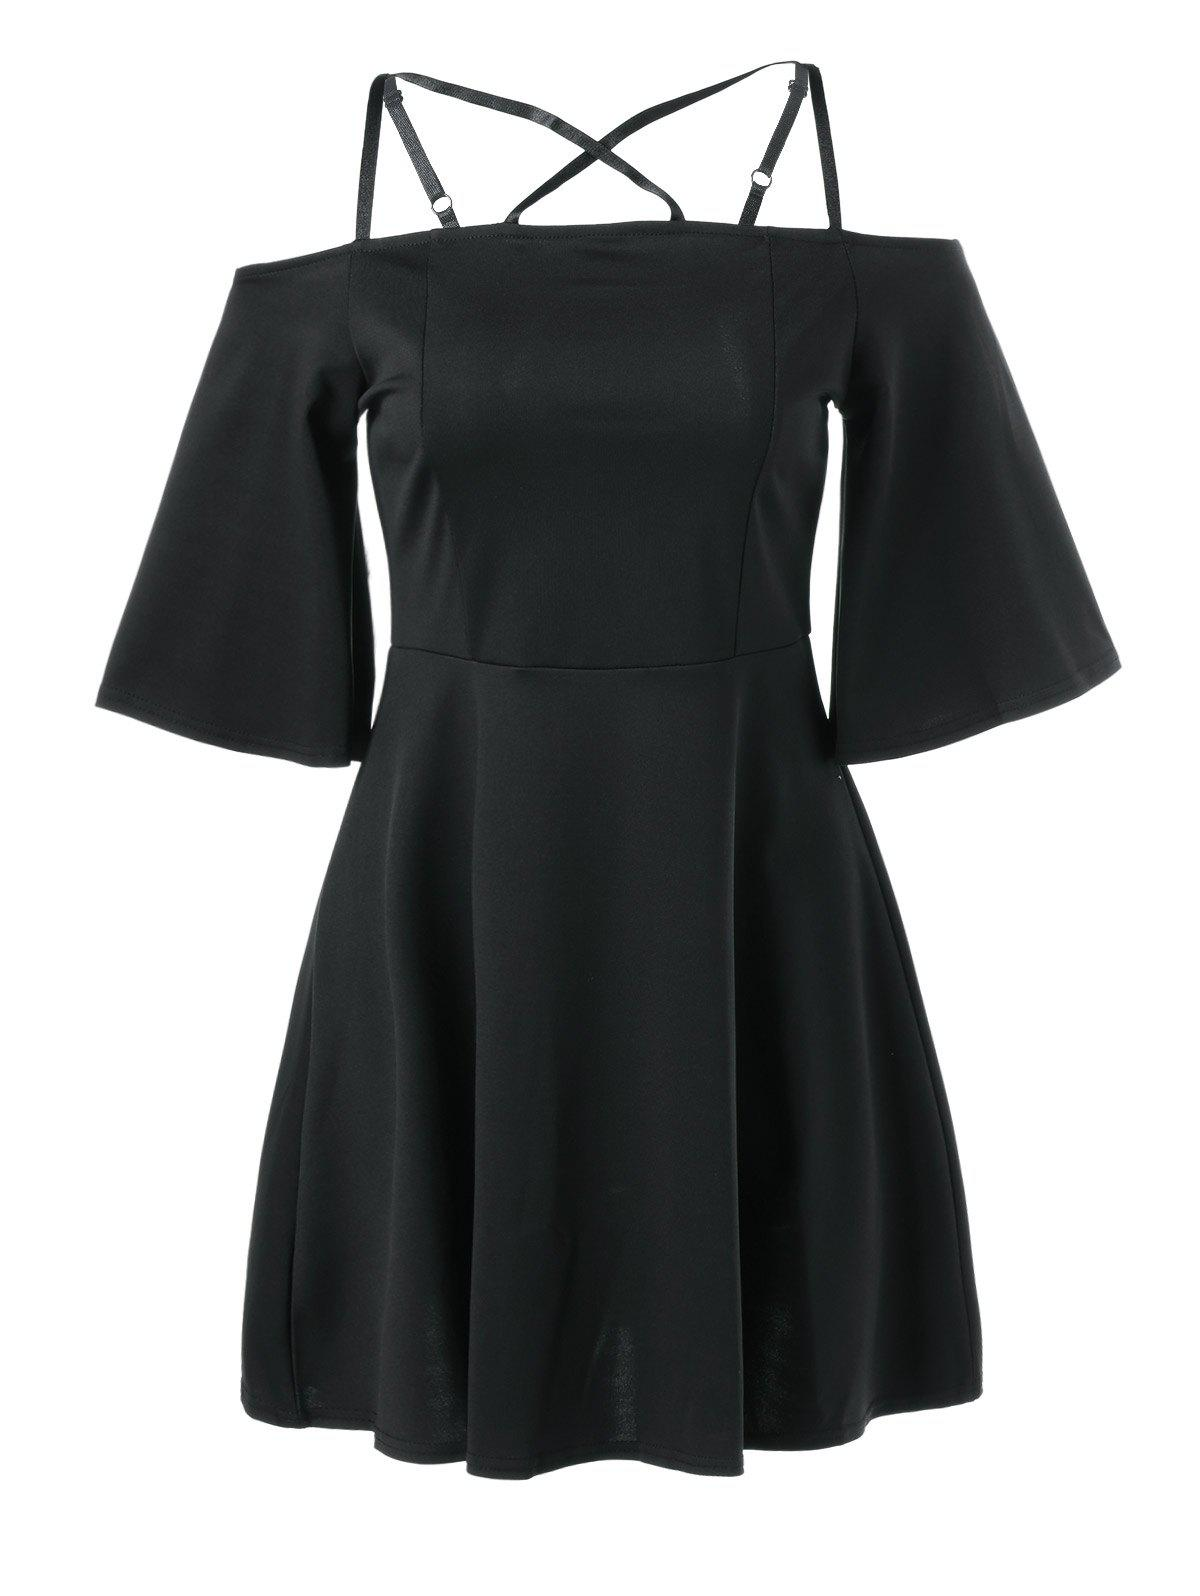 Cami Bell Sleeve Criss Cross Dress - BLACK L